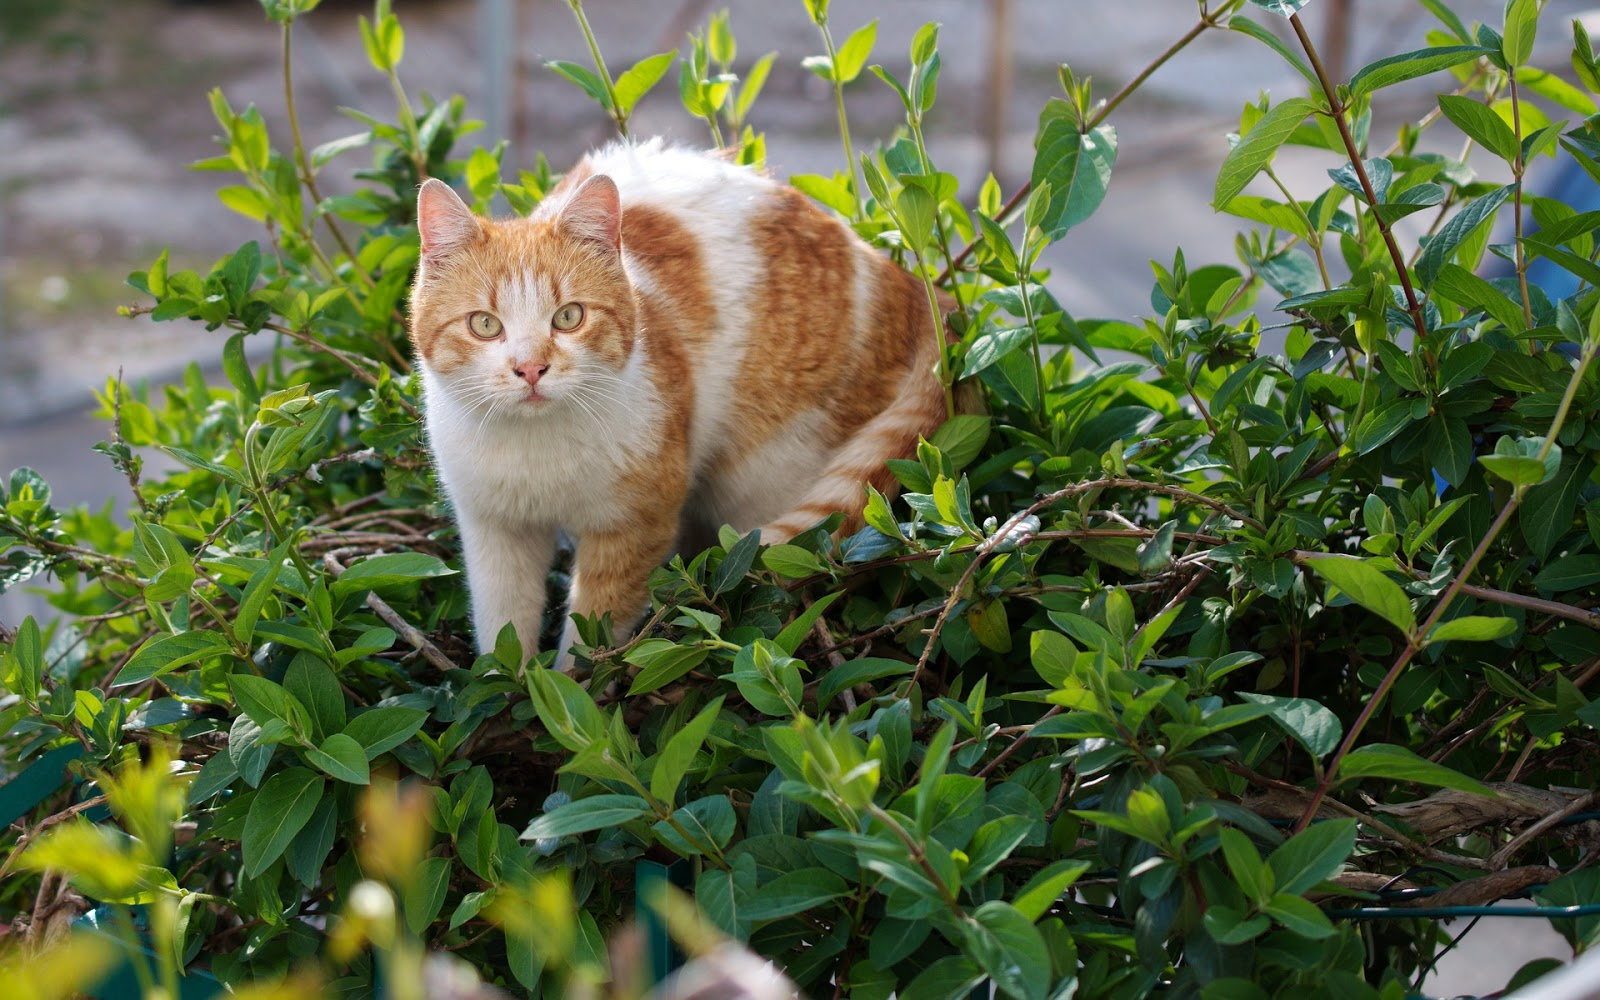 Orange and white cat walking in plants